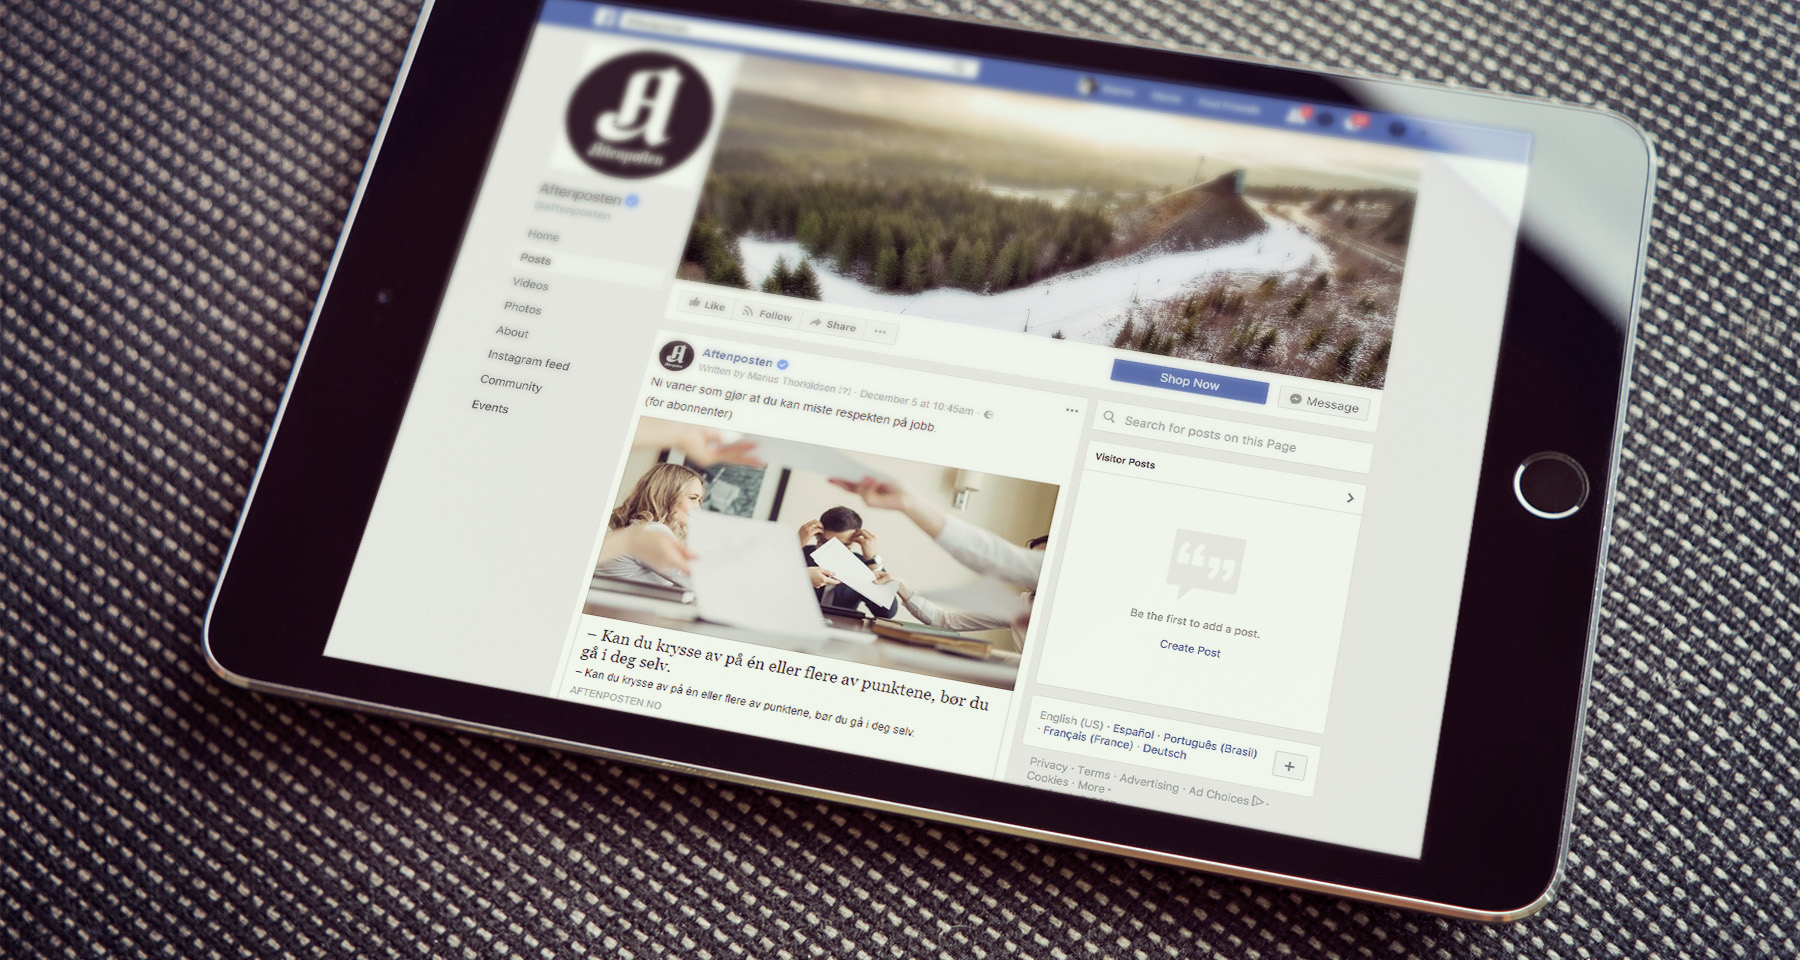 Aftenposten stopped chasing Facebook reach, brought in US$500,000 extra annually